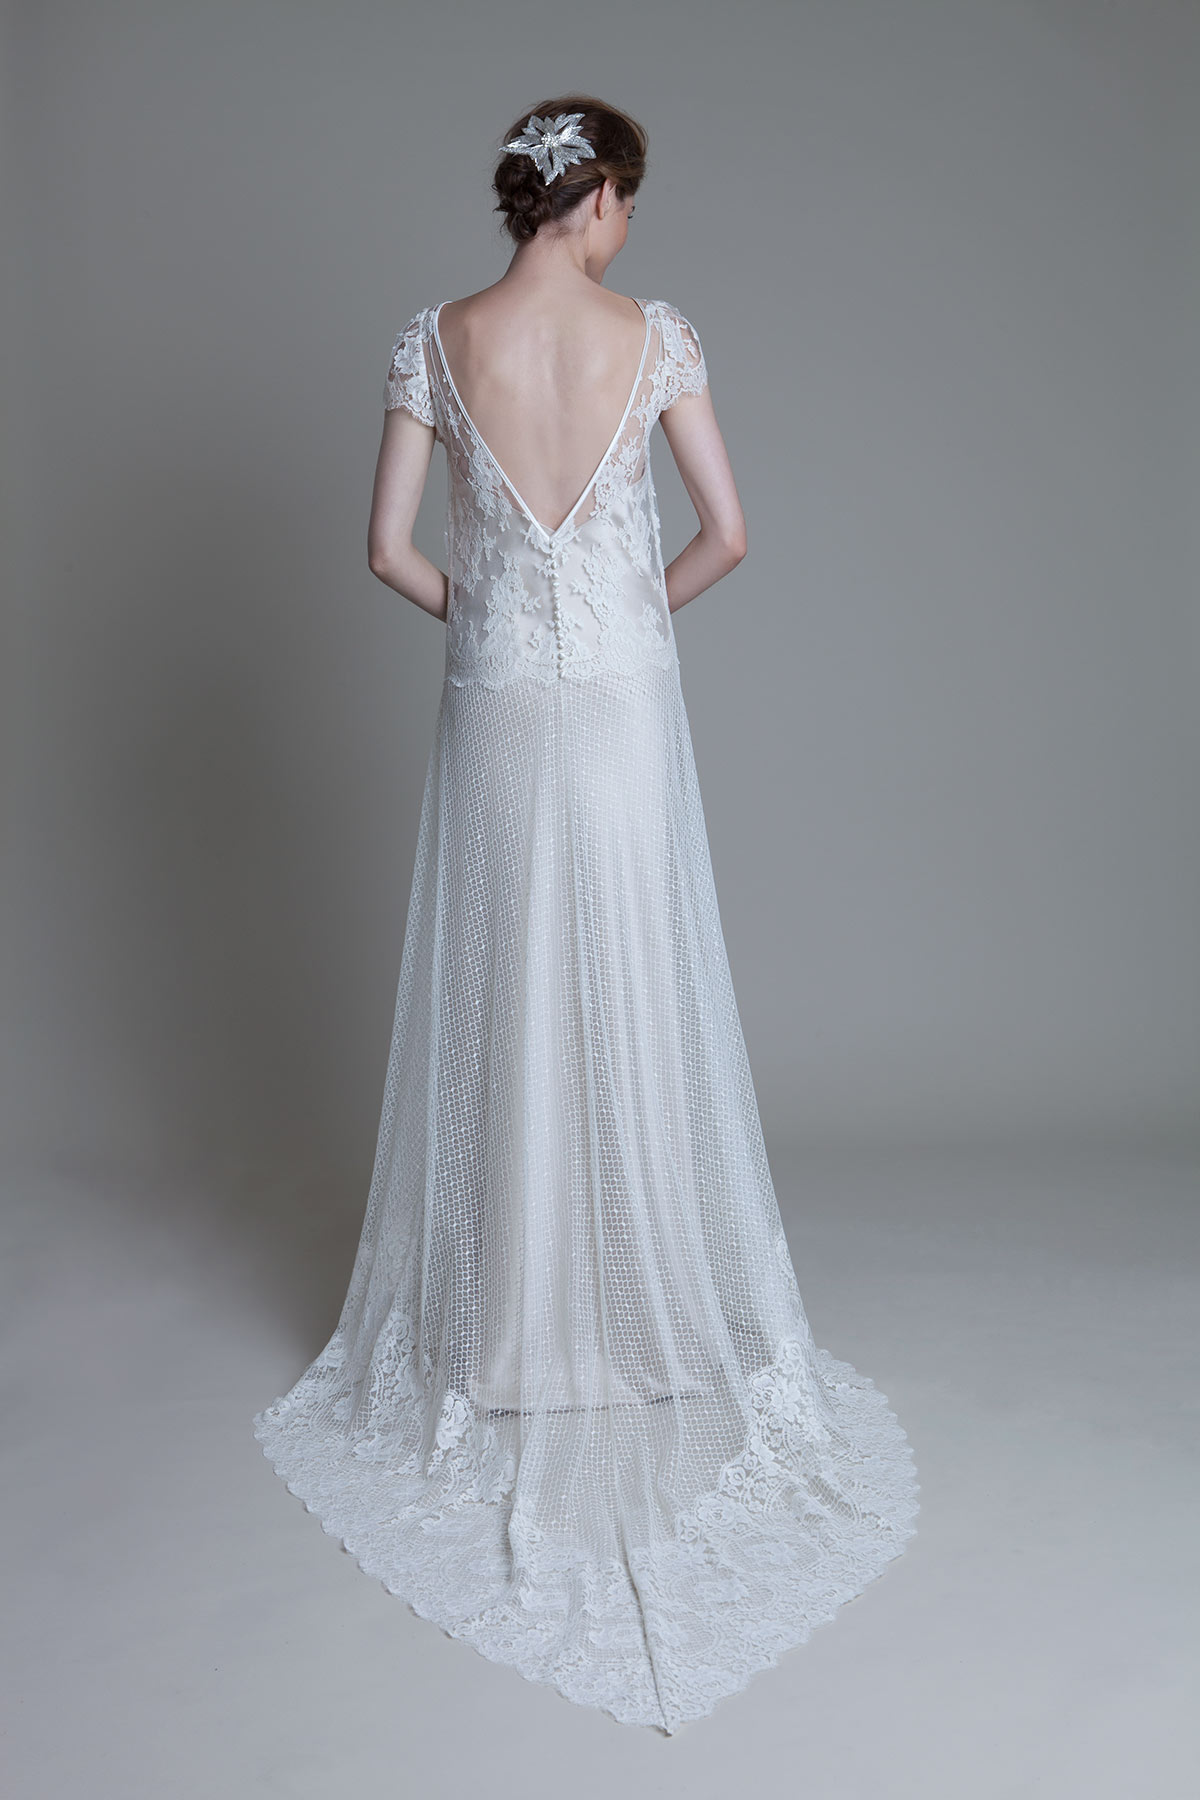 Back view of the Iris Honeycomb with lace cap sleeve and blush Iris Slip wedding dress by Halfpenny London